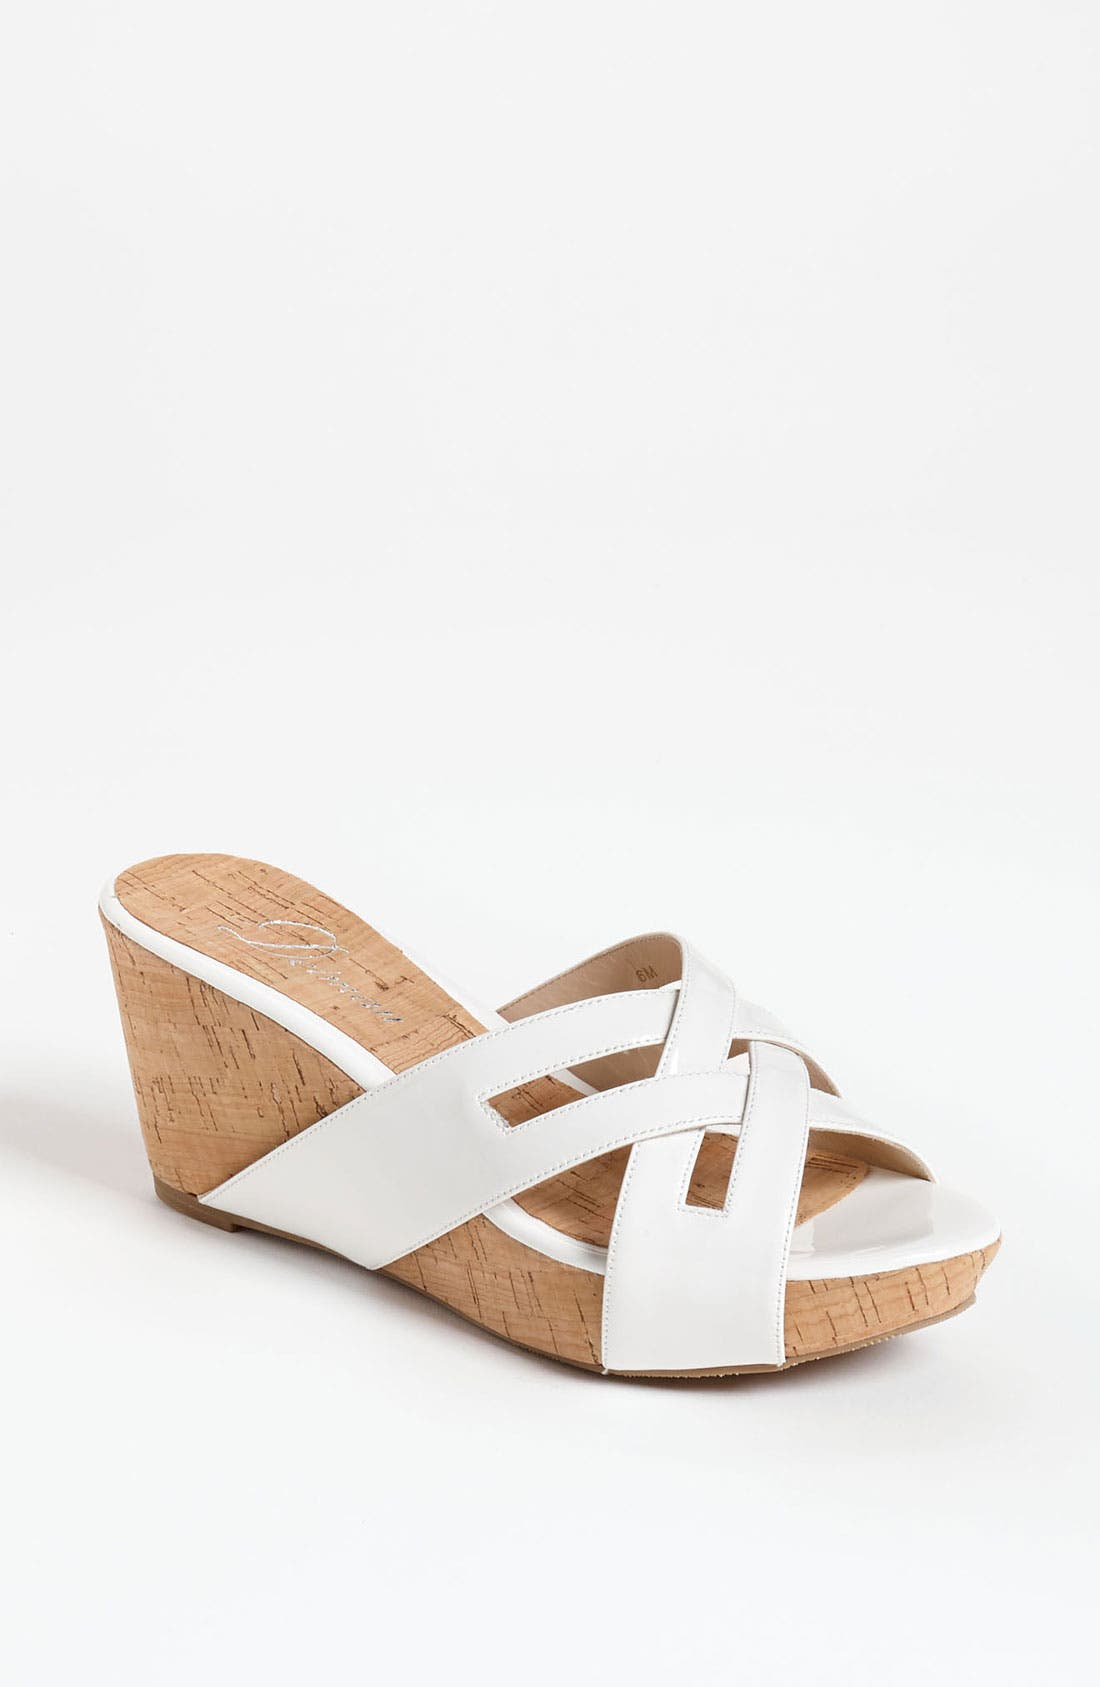 Alternate Image 1 Selected - Delman 'Carla' Sandal